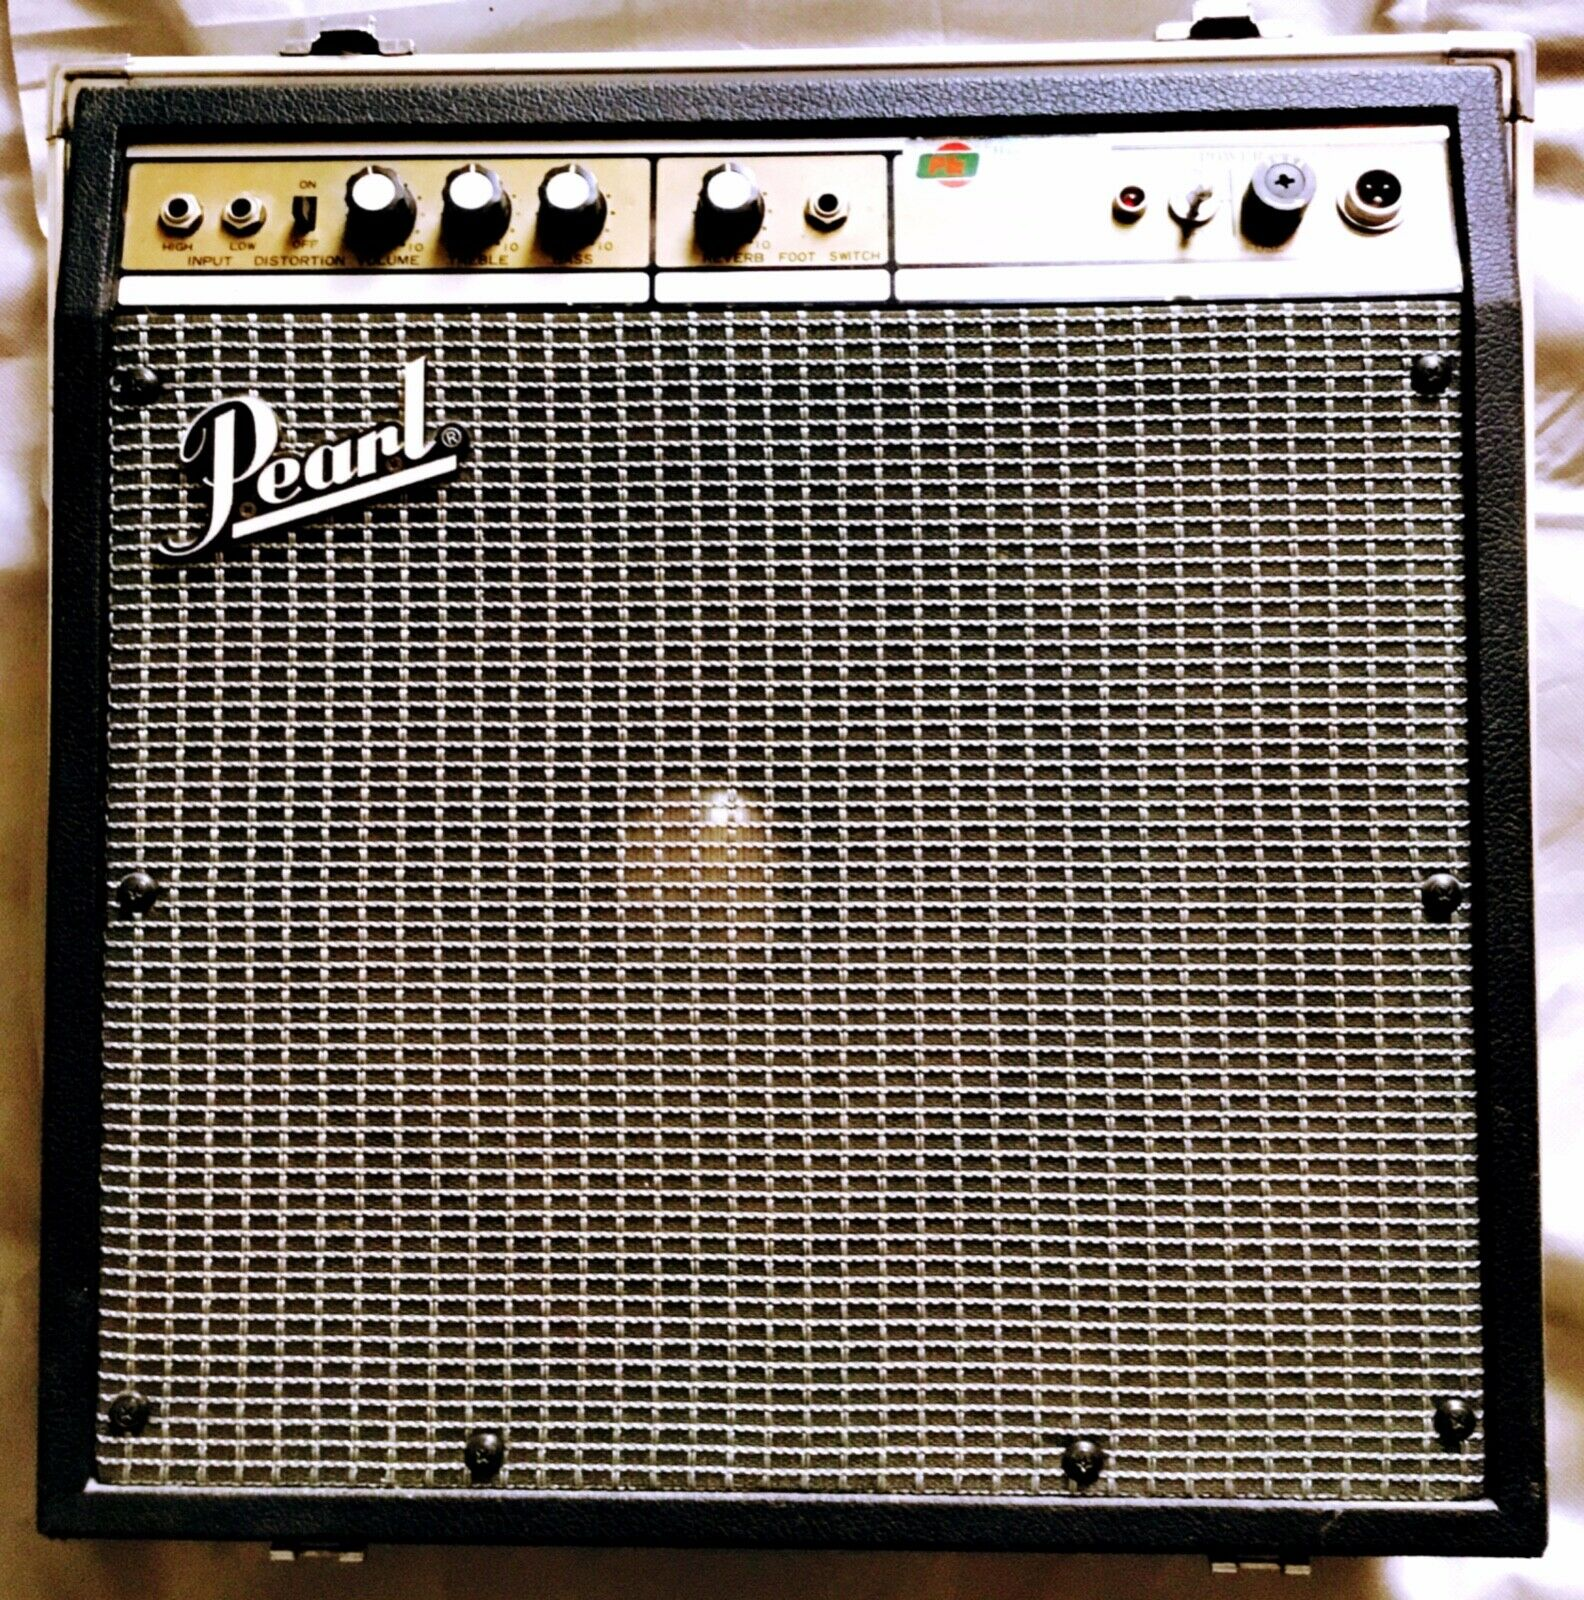 Click image for larger version.  Name:PEARL-Bass-Amp-SS-061-.jpg Views:23 Size:593.2 KB ID:55923